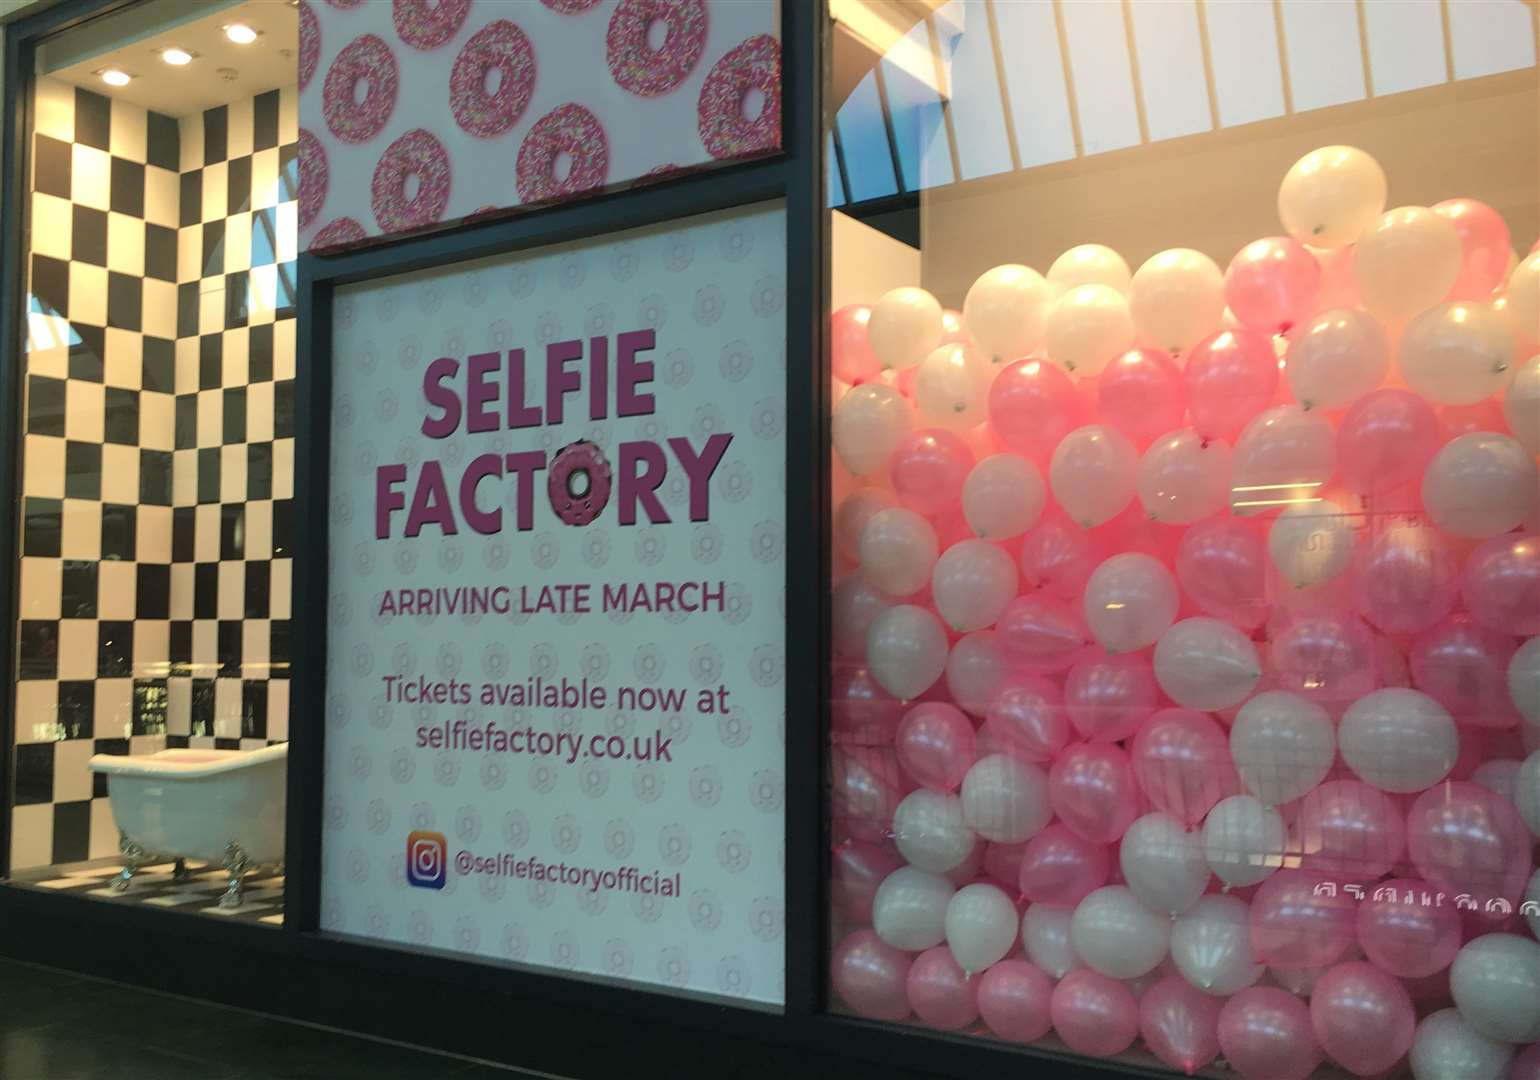 The Selfie Factory will close in May